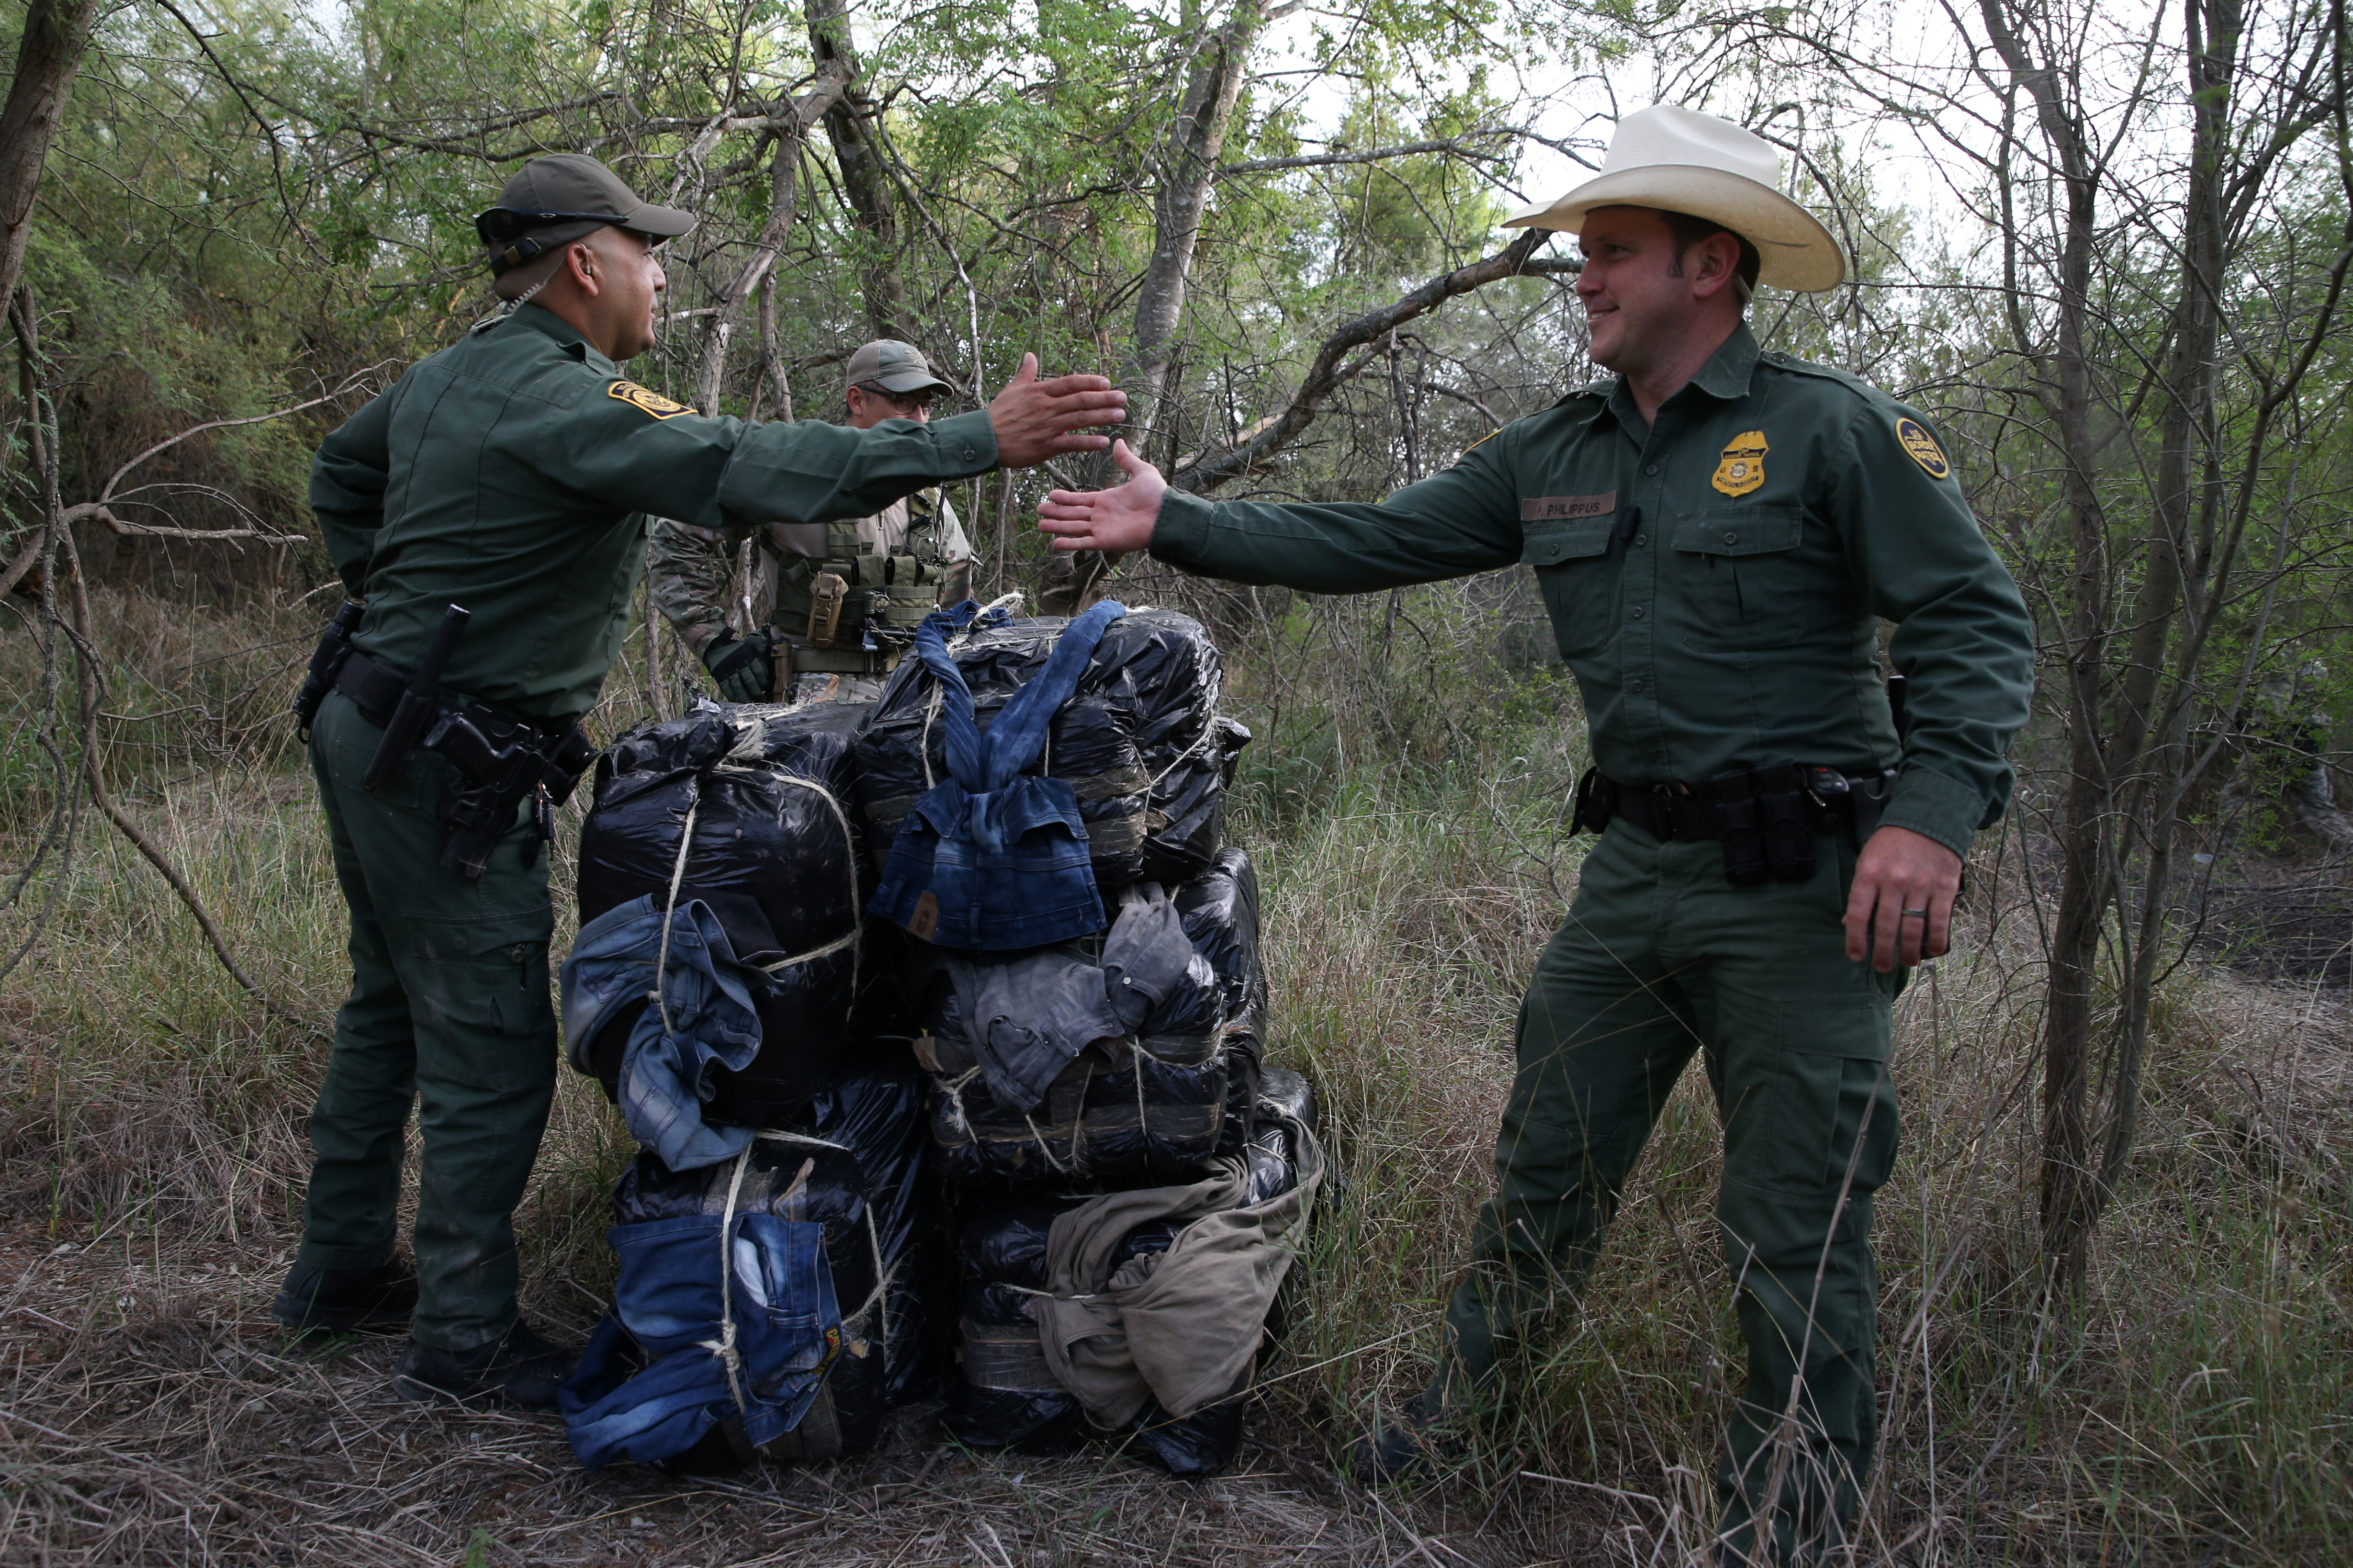 Border patrol agents congratulate each other after seizing 297 pounds of marijuana following a drug bust by the Mexico-U.S. border near McAllen